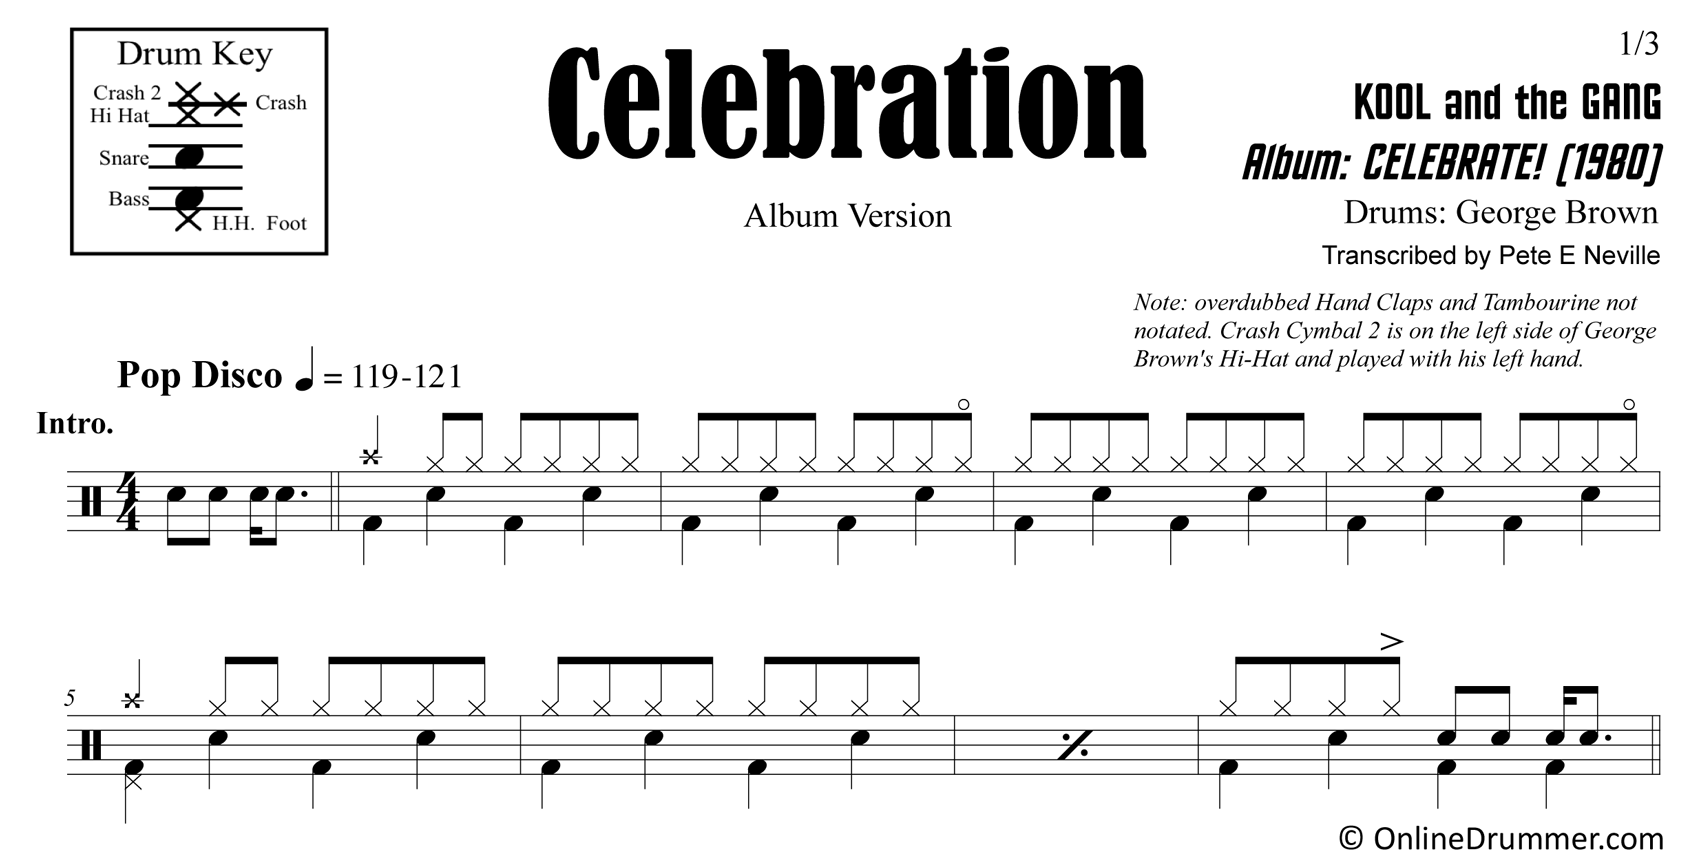 Celebration - Kool and the Gang - Drum Sheet Music